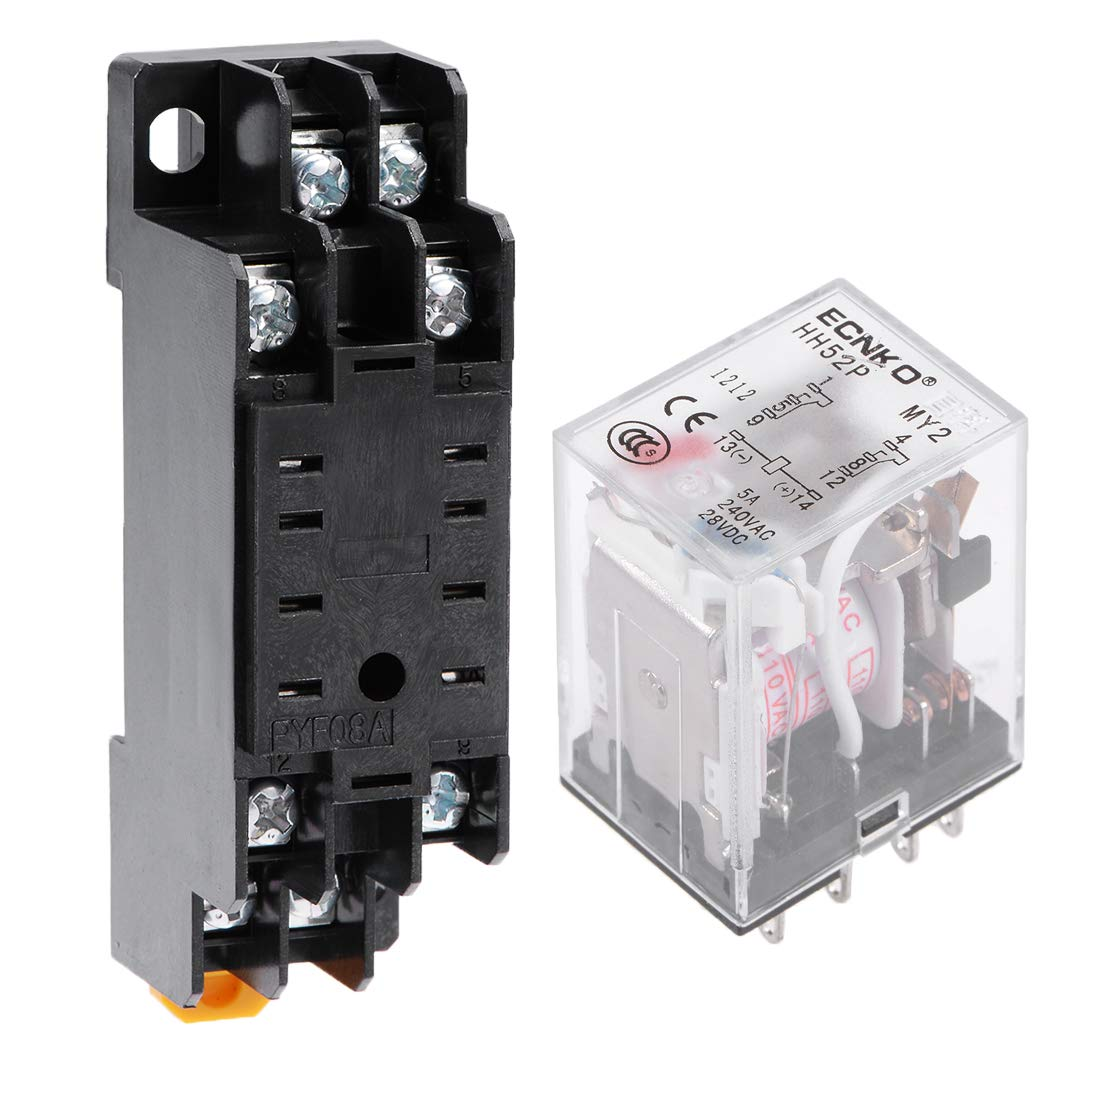 uxcell HH52P AC 110V Coil DPDT 8 Pins Electromagnetic Power Relay Red LED with Scoket